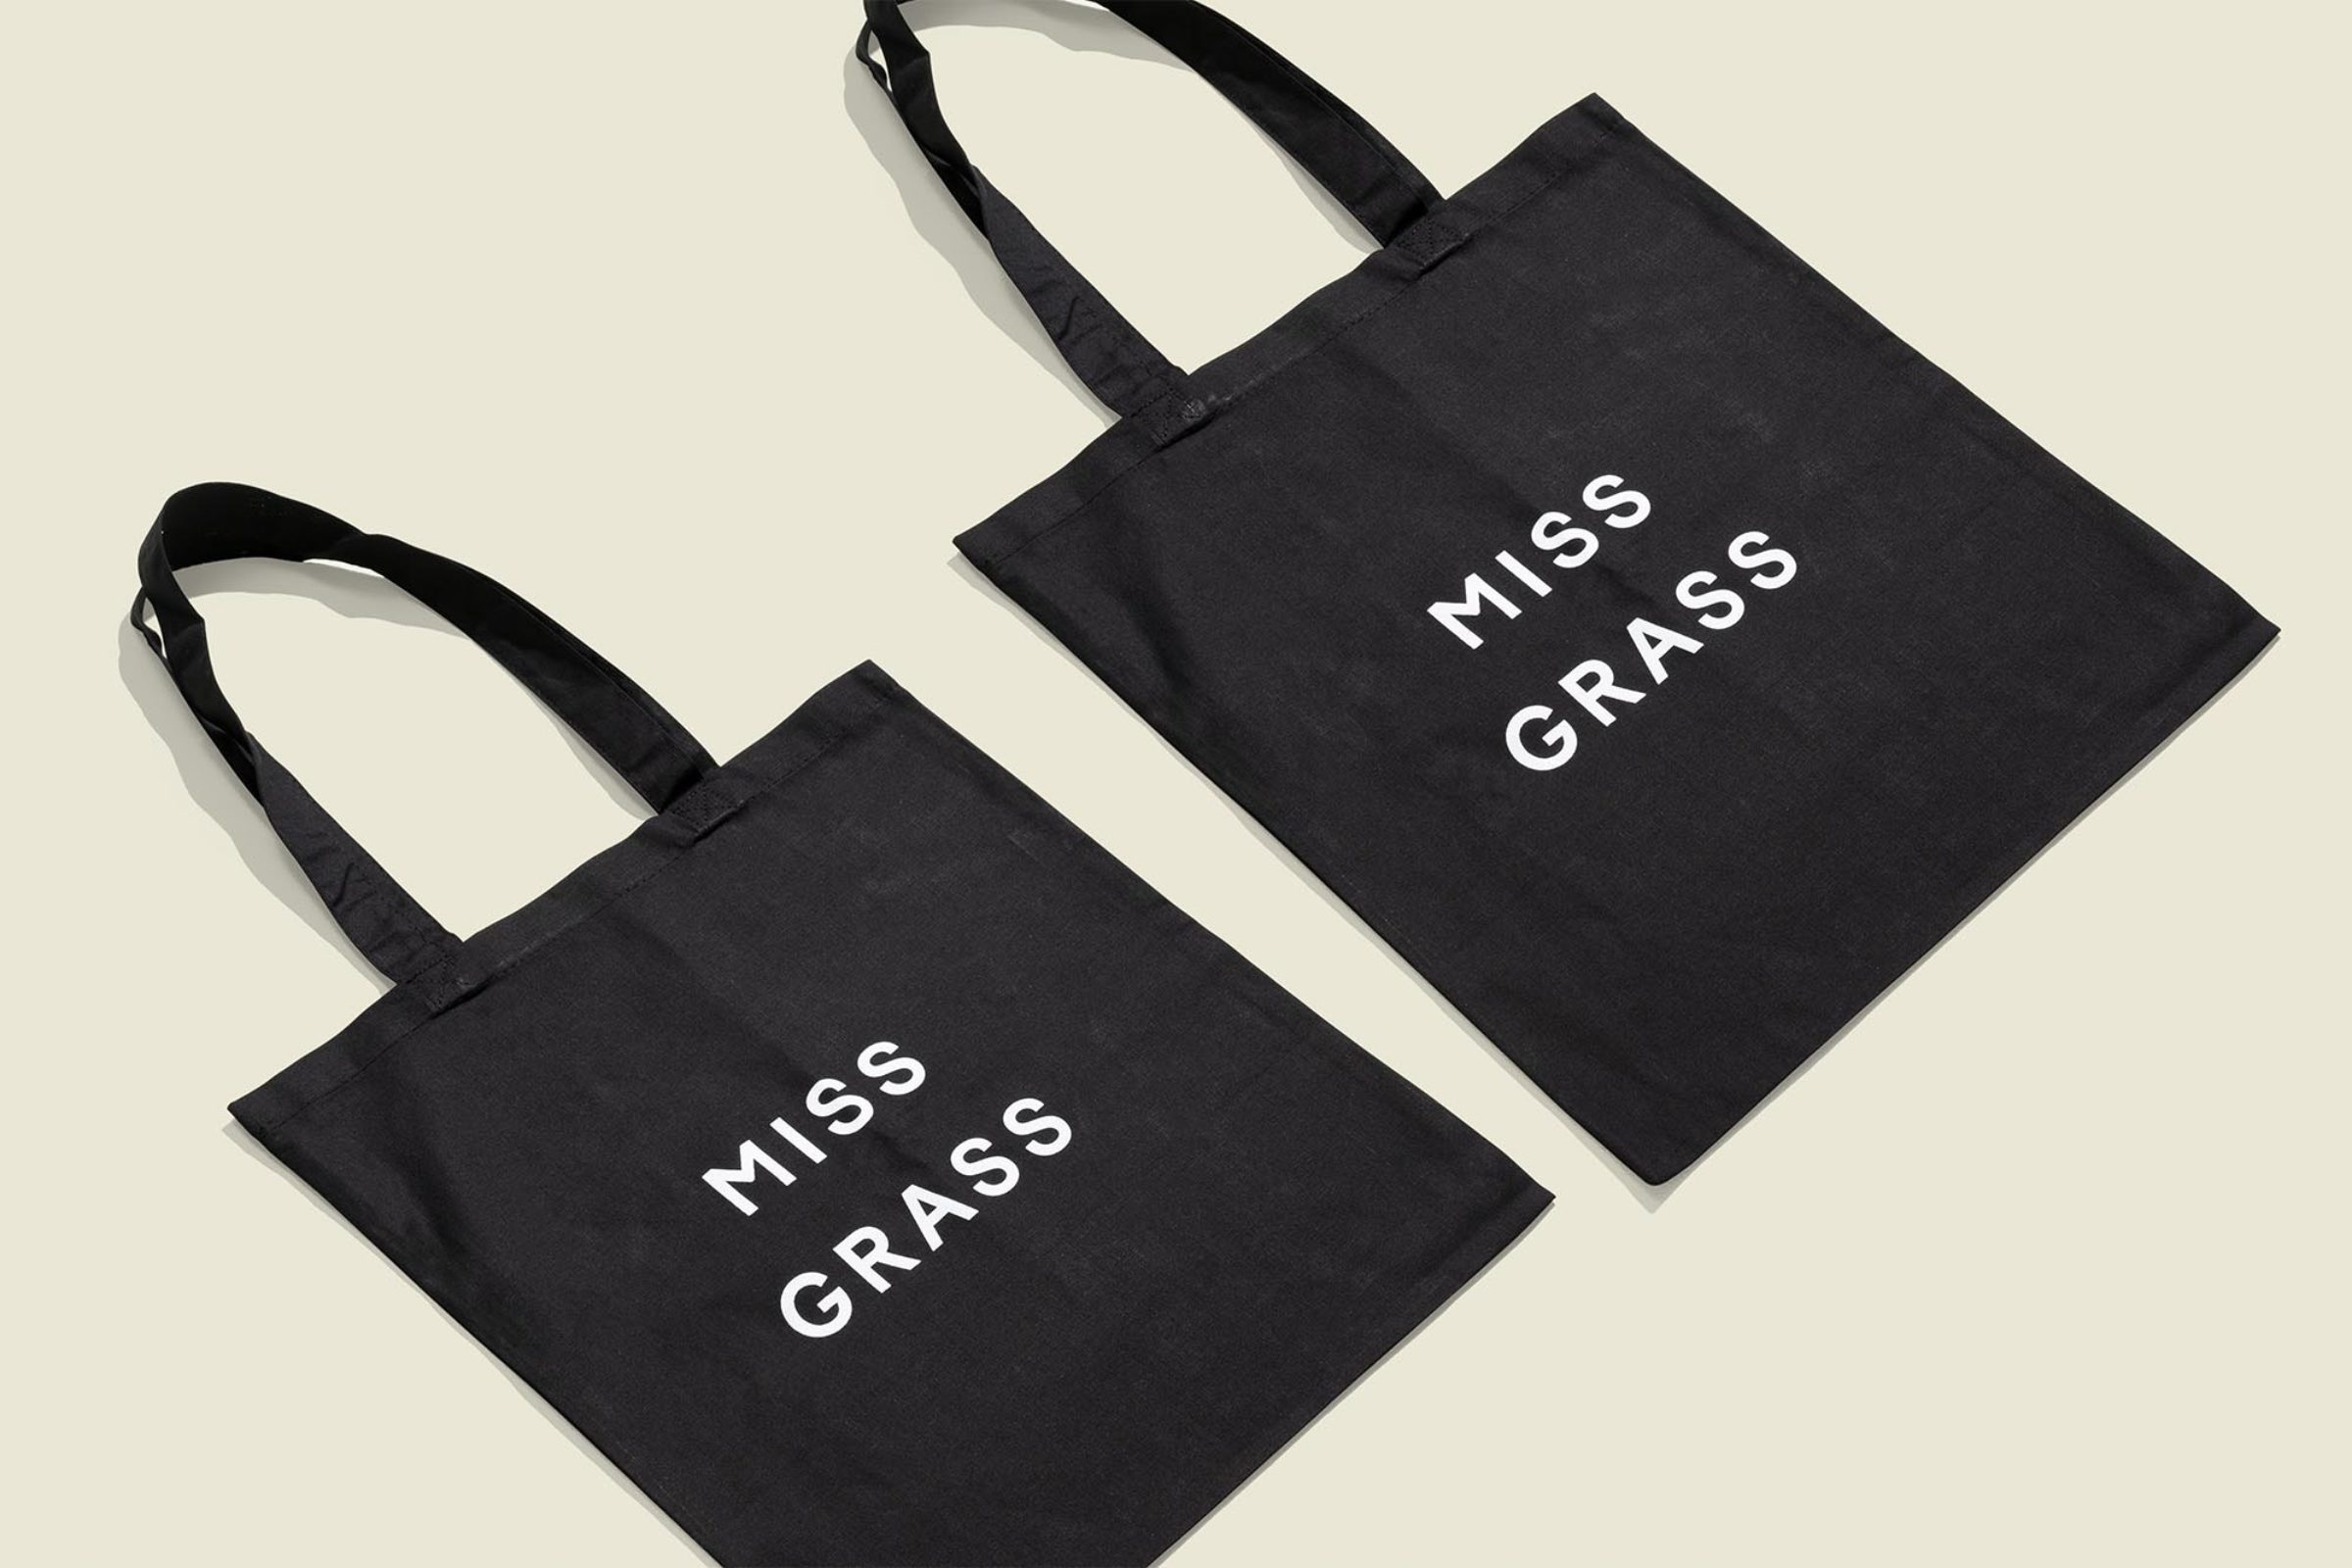 Vedros_MissGrass_Totes